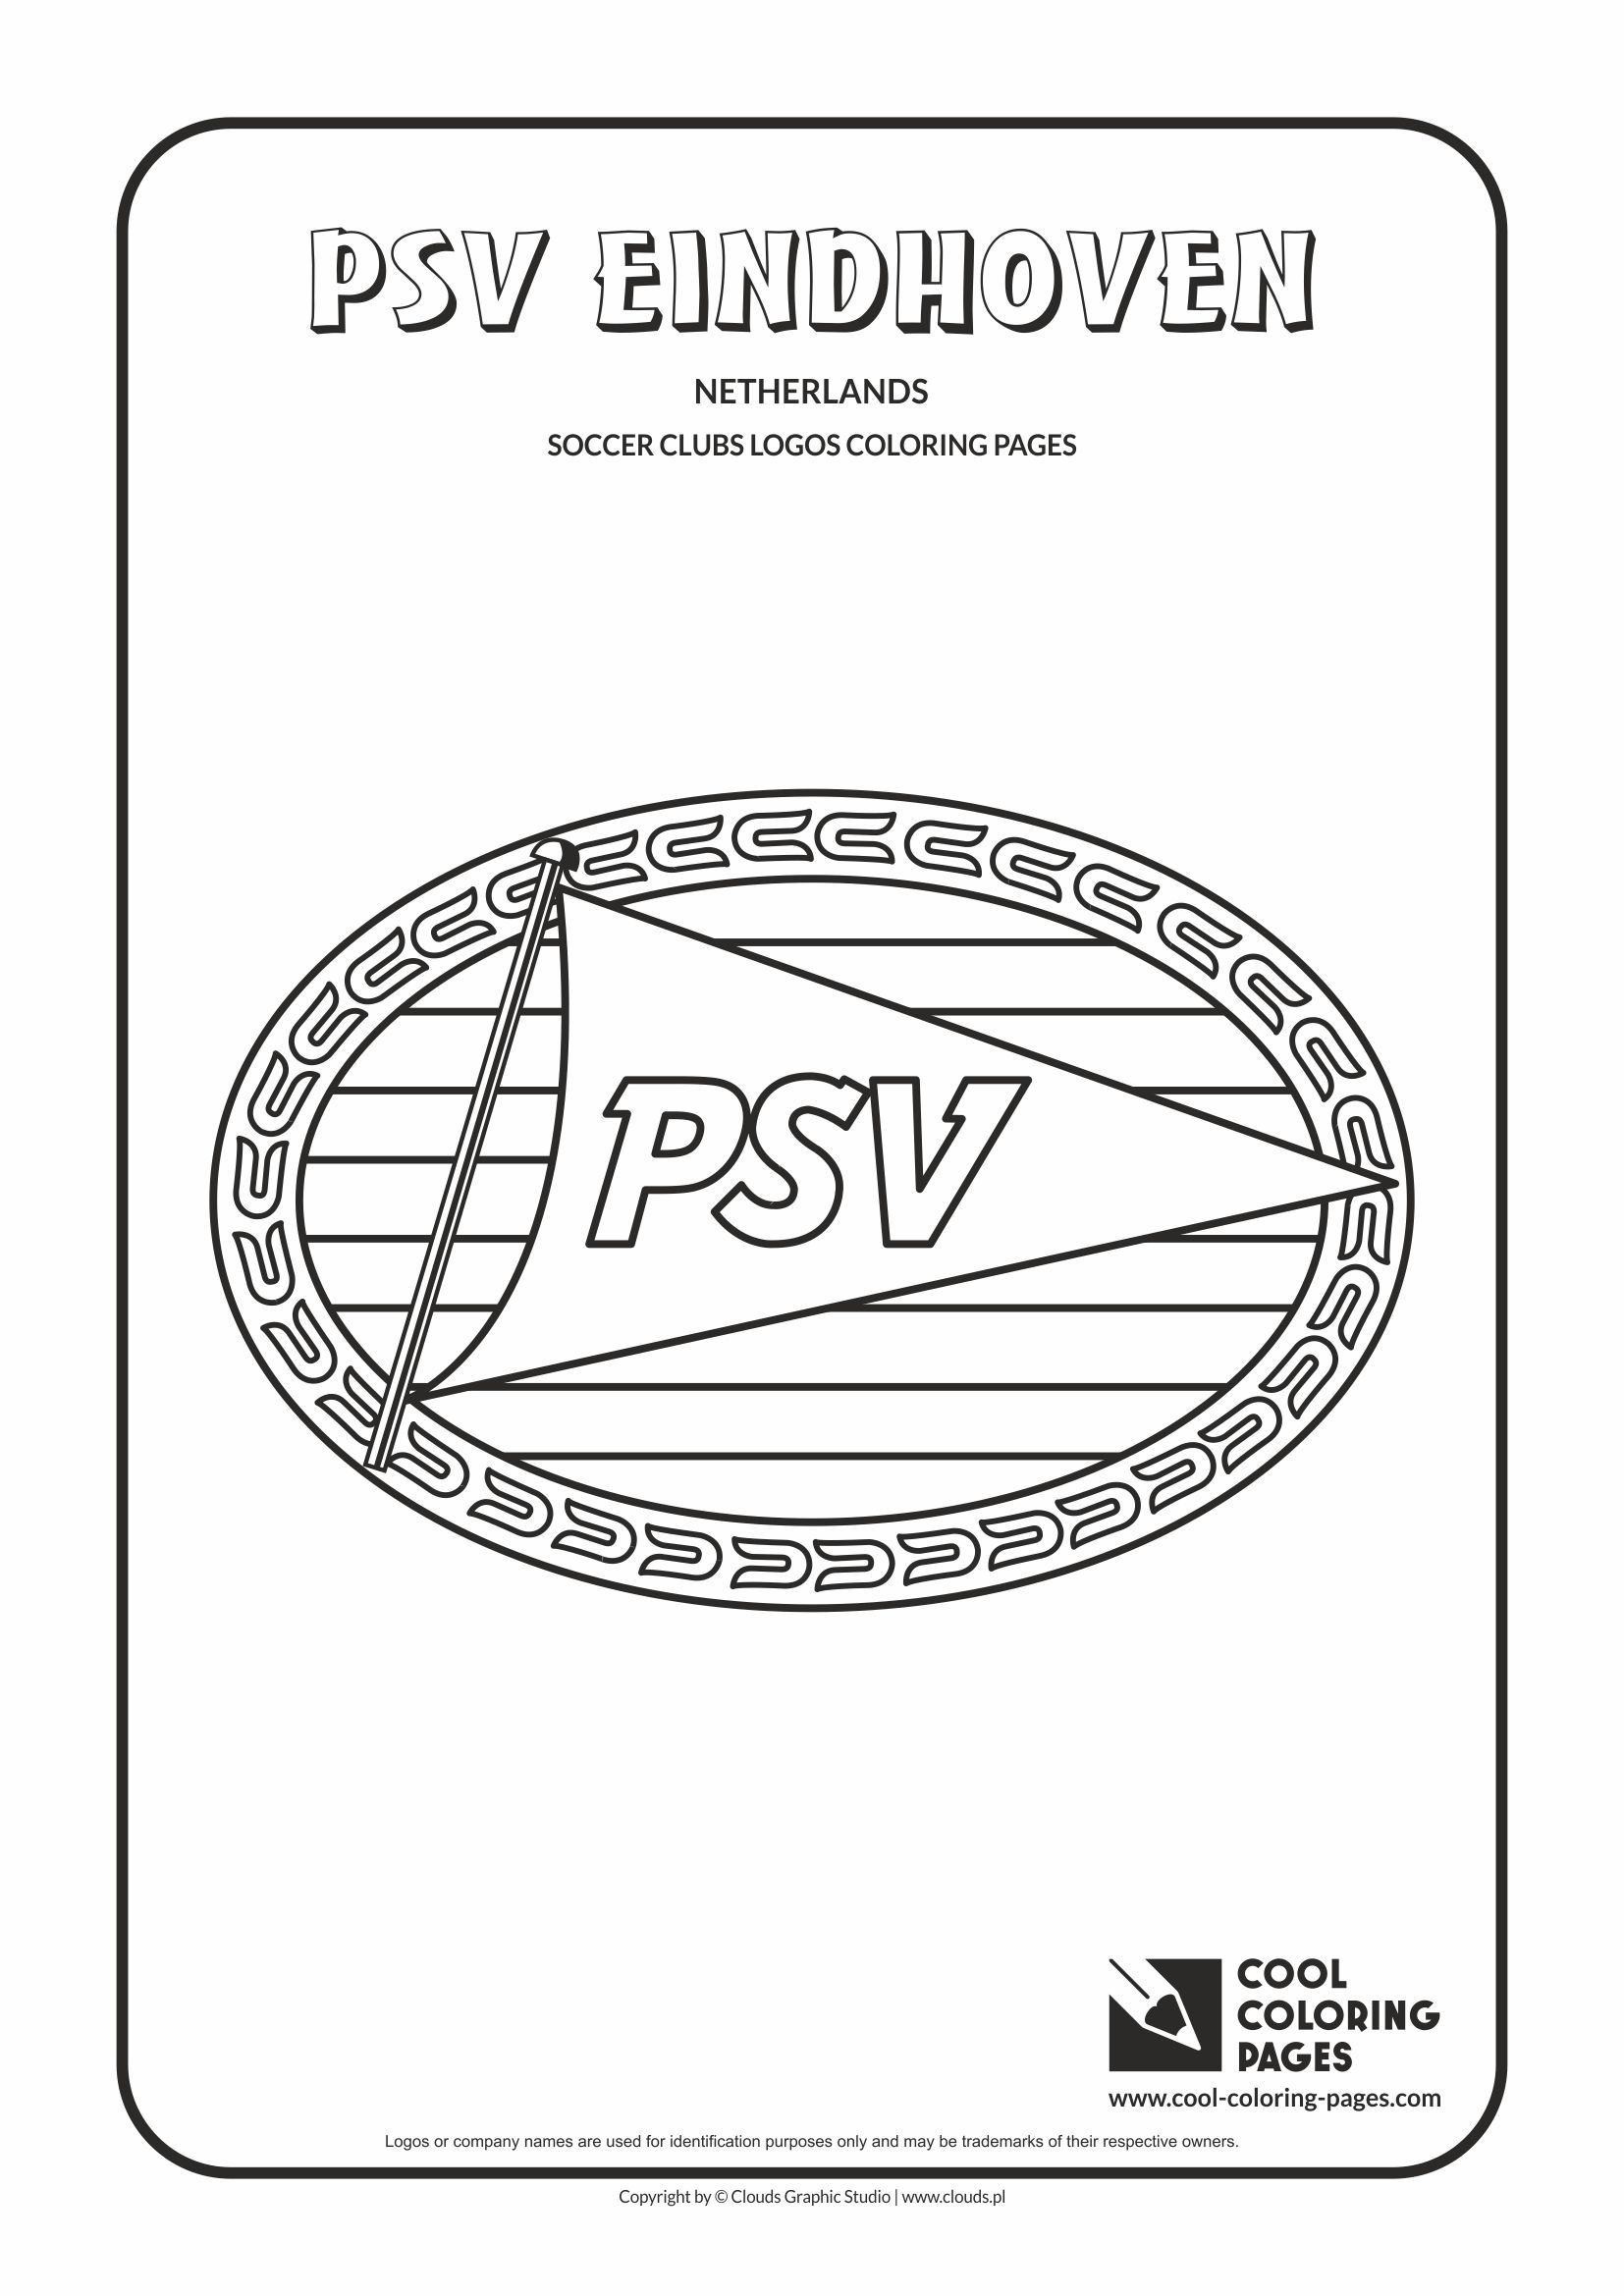 cool coloring pages soccer clubs logos psv eindhoven